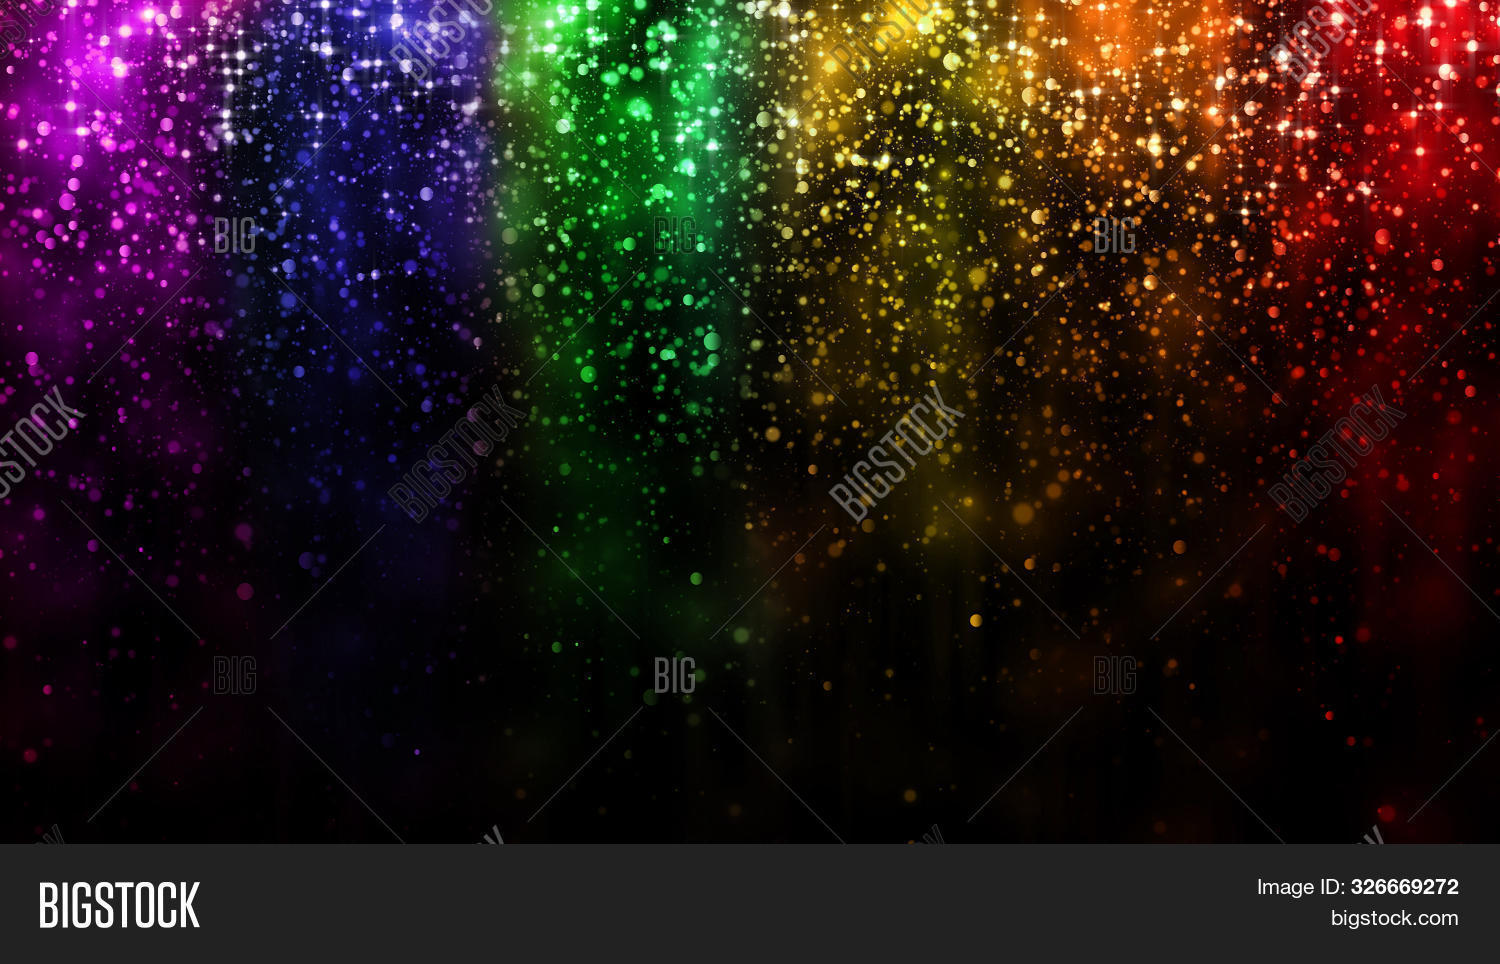 abstract,backdrop,background,banner,bisexual,bokeh,bright,celebrate,celebration,color,colorful,concept,dark,decoration,design,effect,equality,falling,festival,gay,glitter,glittering,gold,golden,happy,homosexual,lesbian,lgbt,lgbtq,lights,love,magical,parade,particles,party,pattern,poster,pride,rainbow,sparks,texture,transgender